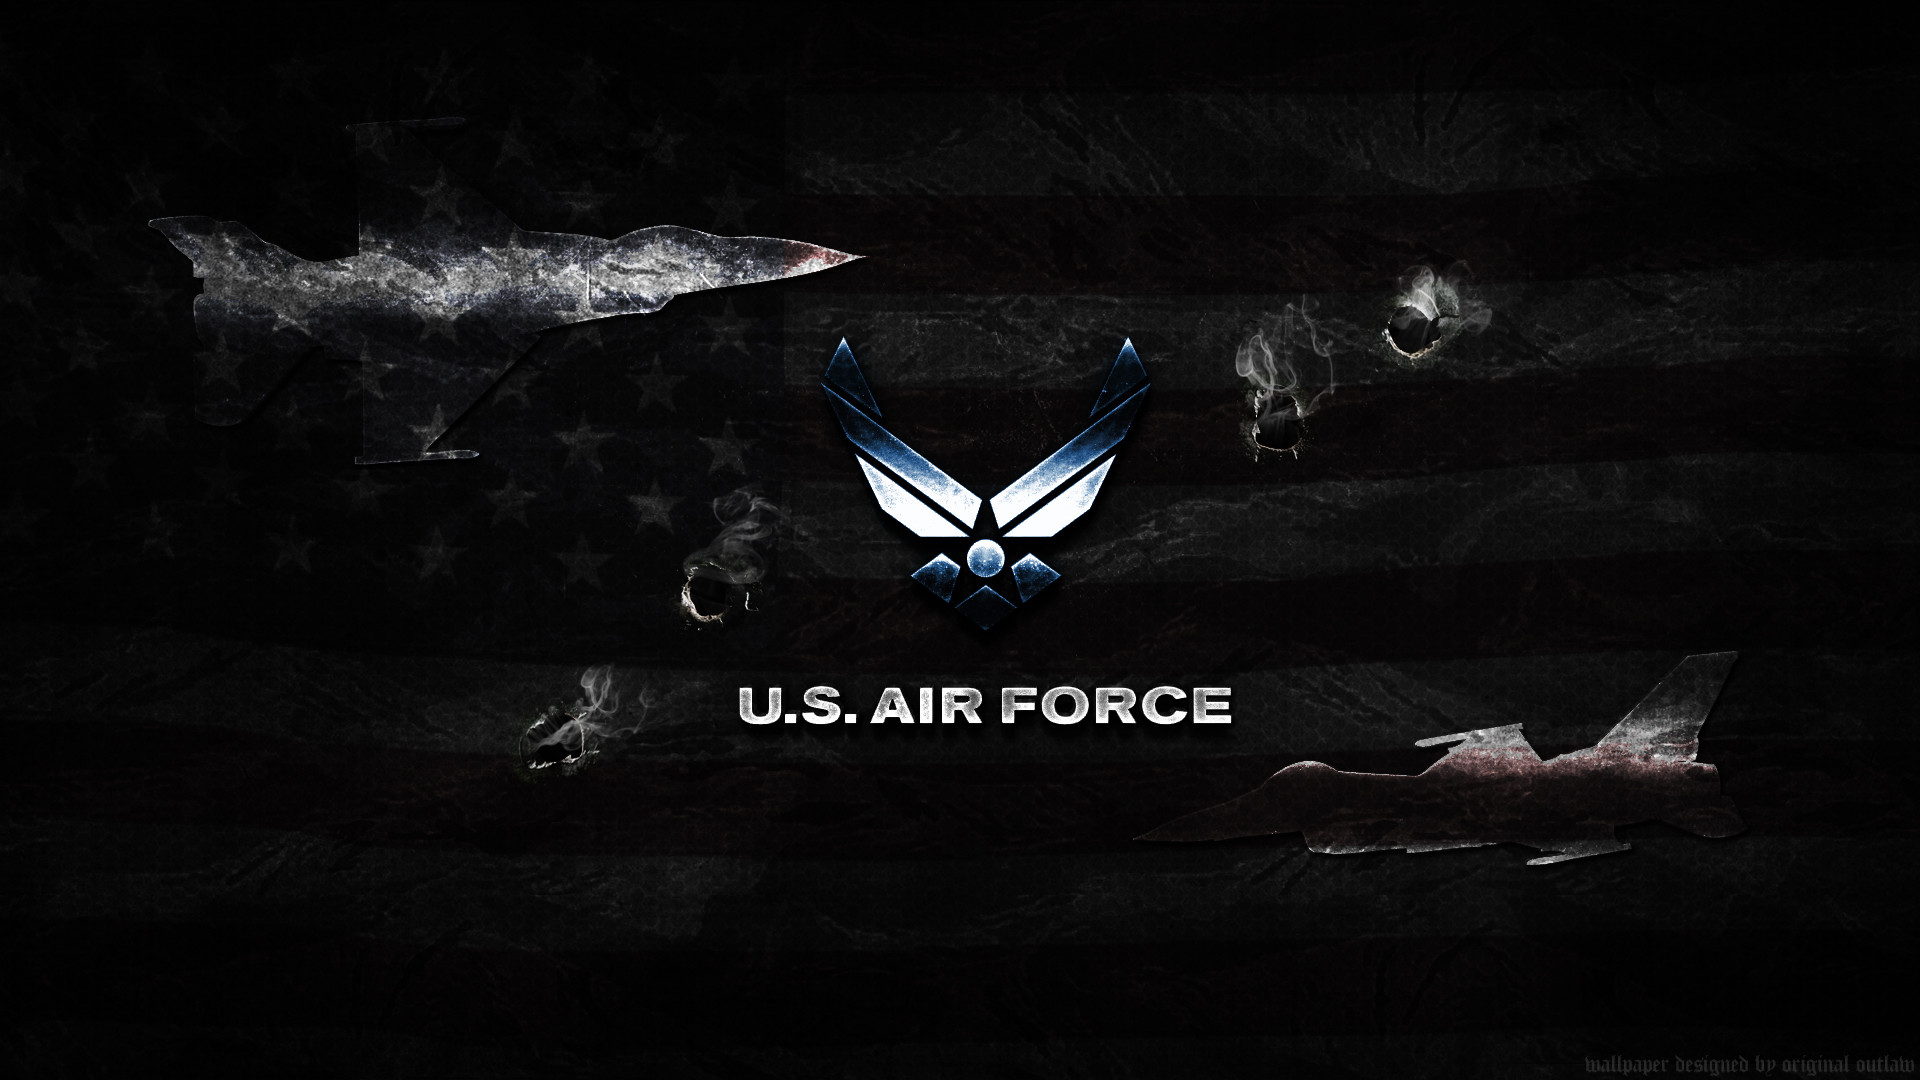 1920x1080 American Air Force Hd Widescreen Wallpapers ~ Usaf Wallpaper: Air,  Widescreen, Usaf Wallpaper